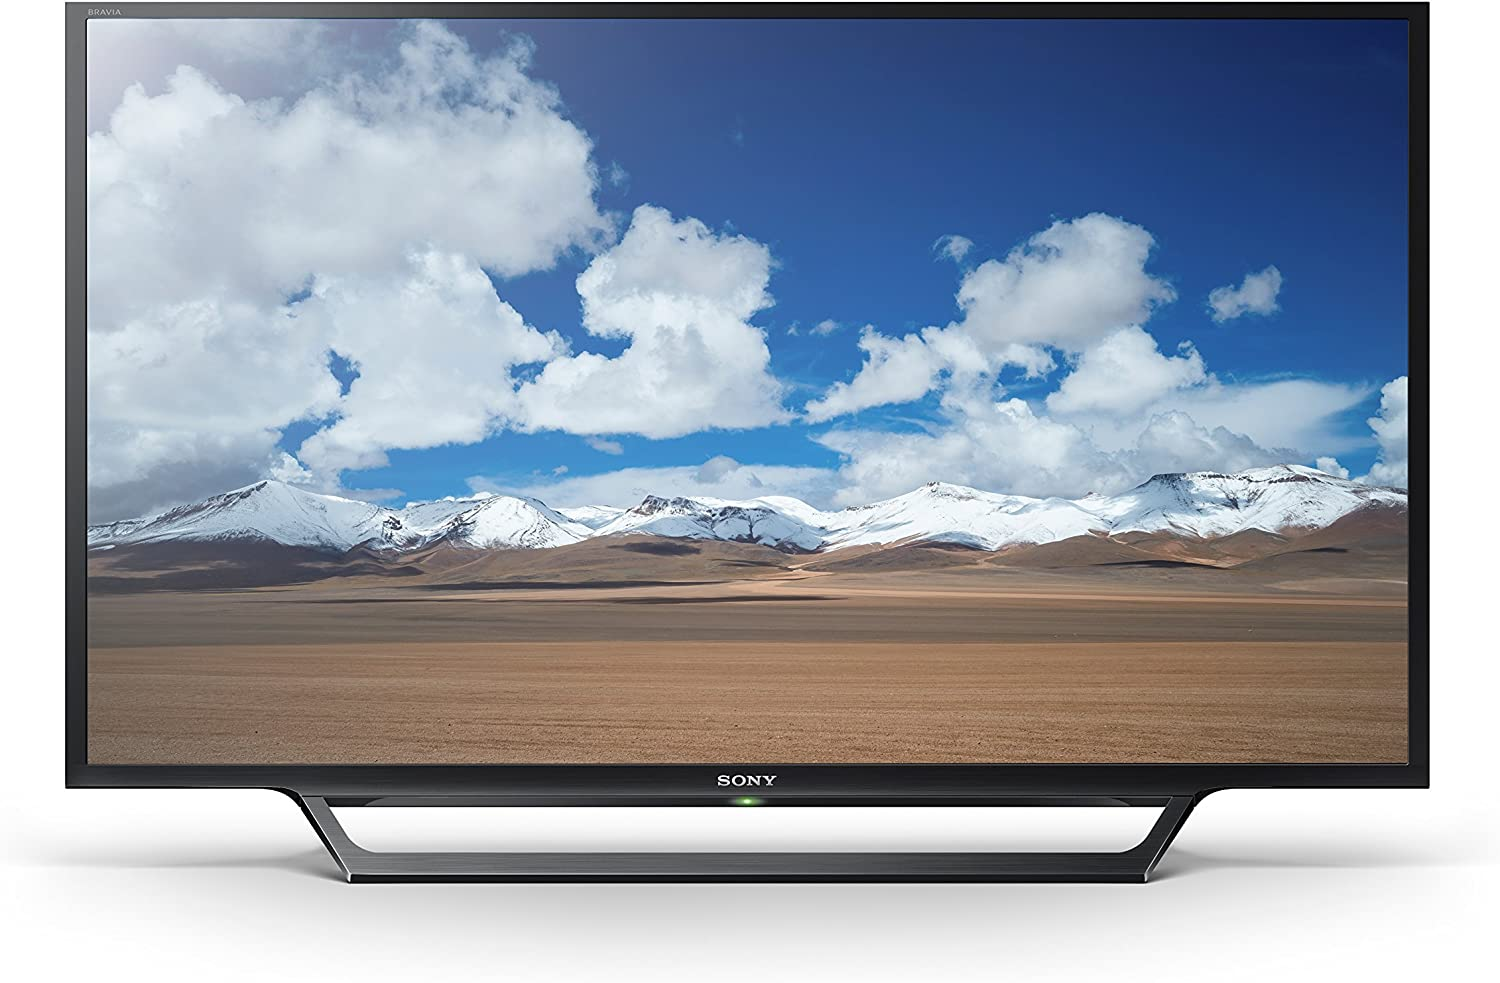 Sony KDL48W650D Televisor HD Wi-Fi Integrado (Negro) (Reacondicionado Certificado): Amazon.es: Electrónica